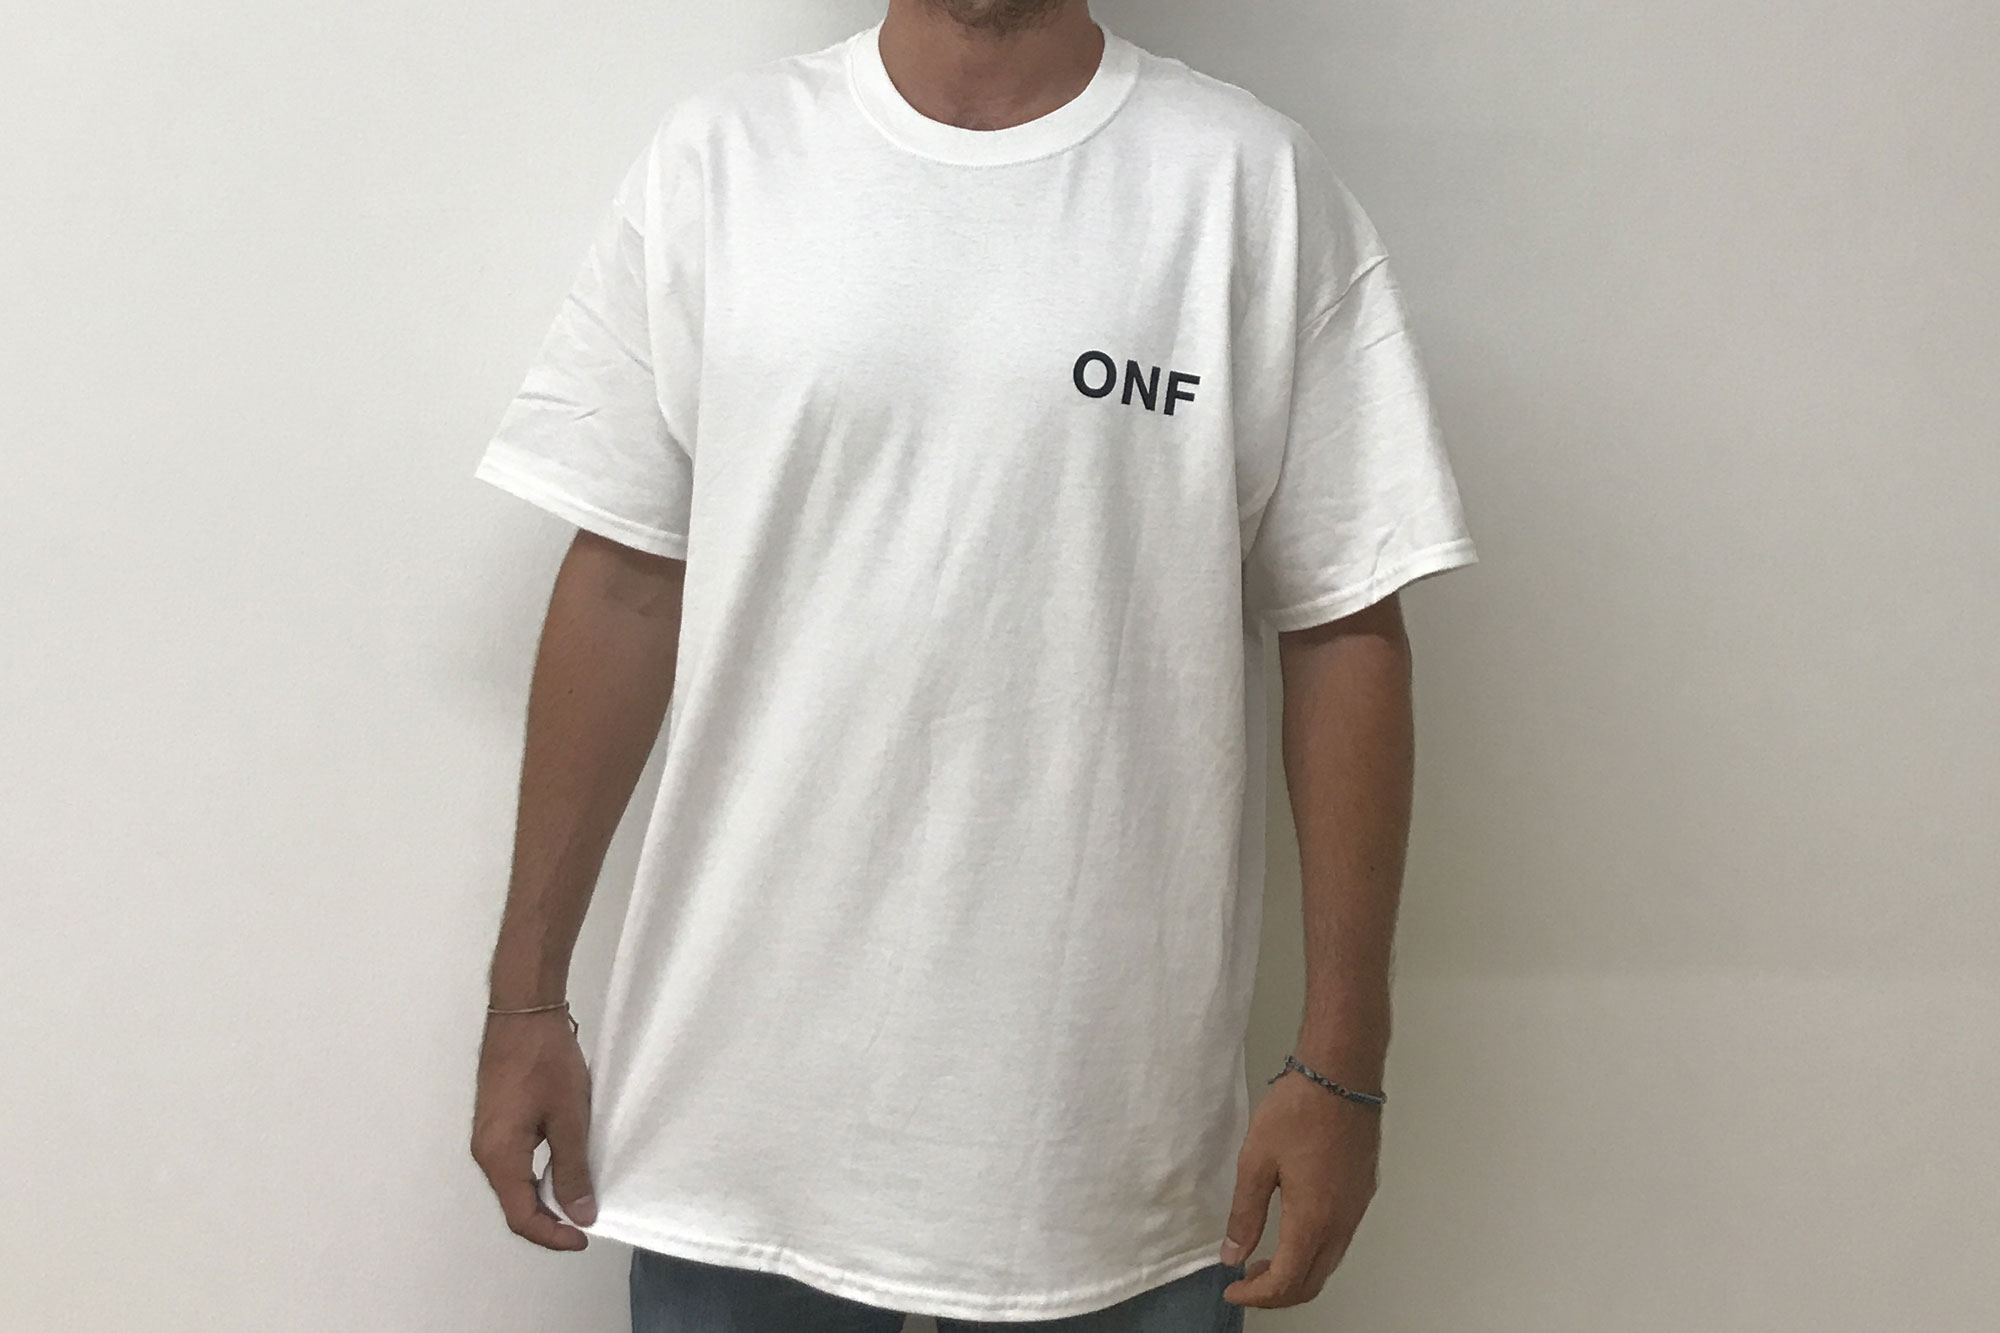 onf-t-shirt-4